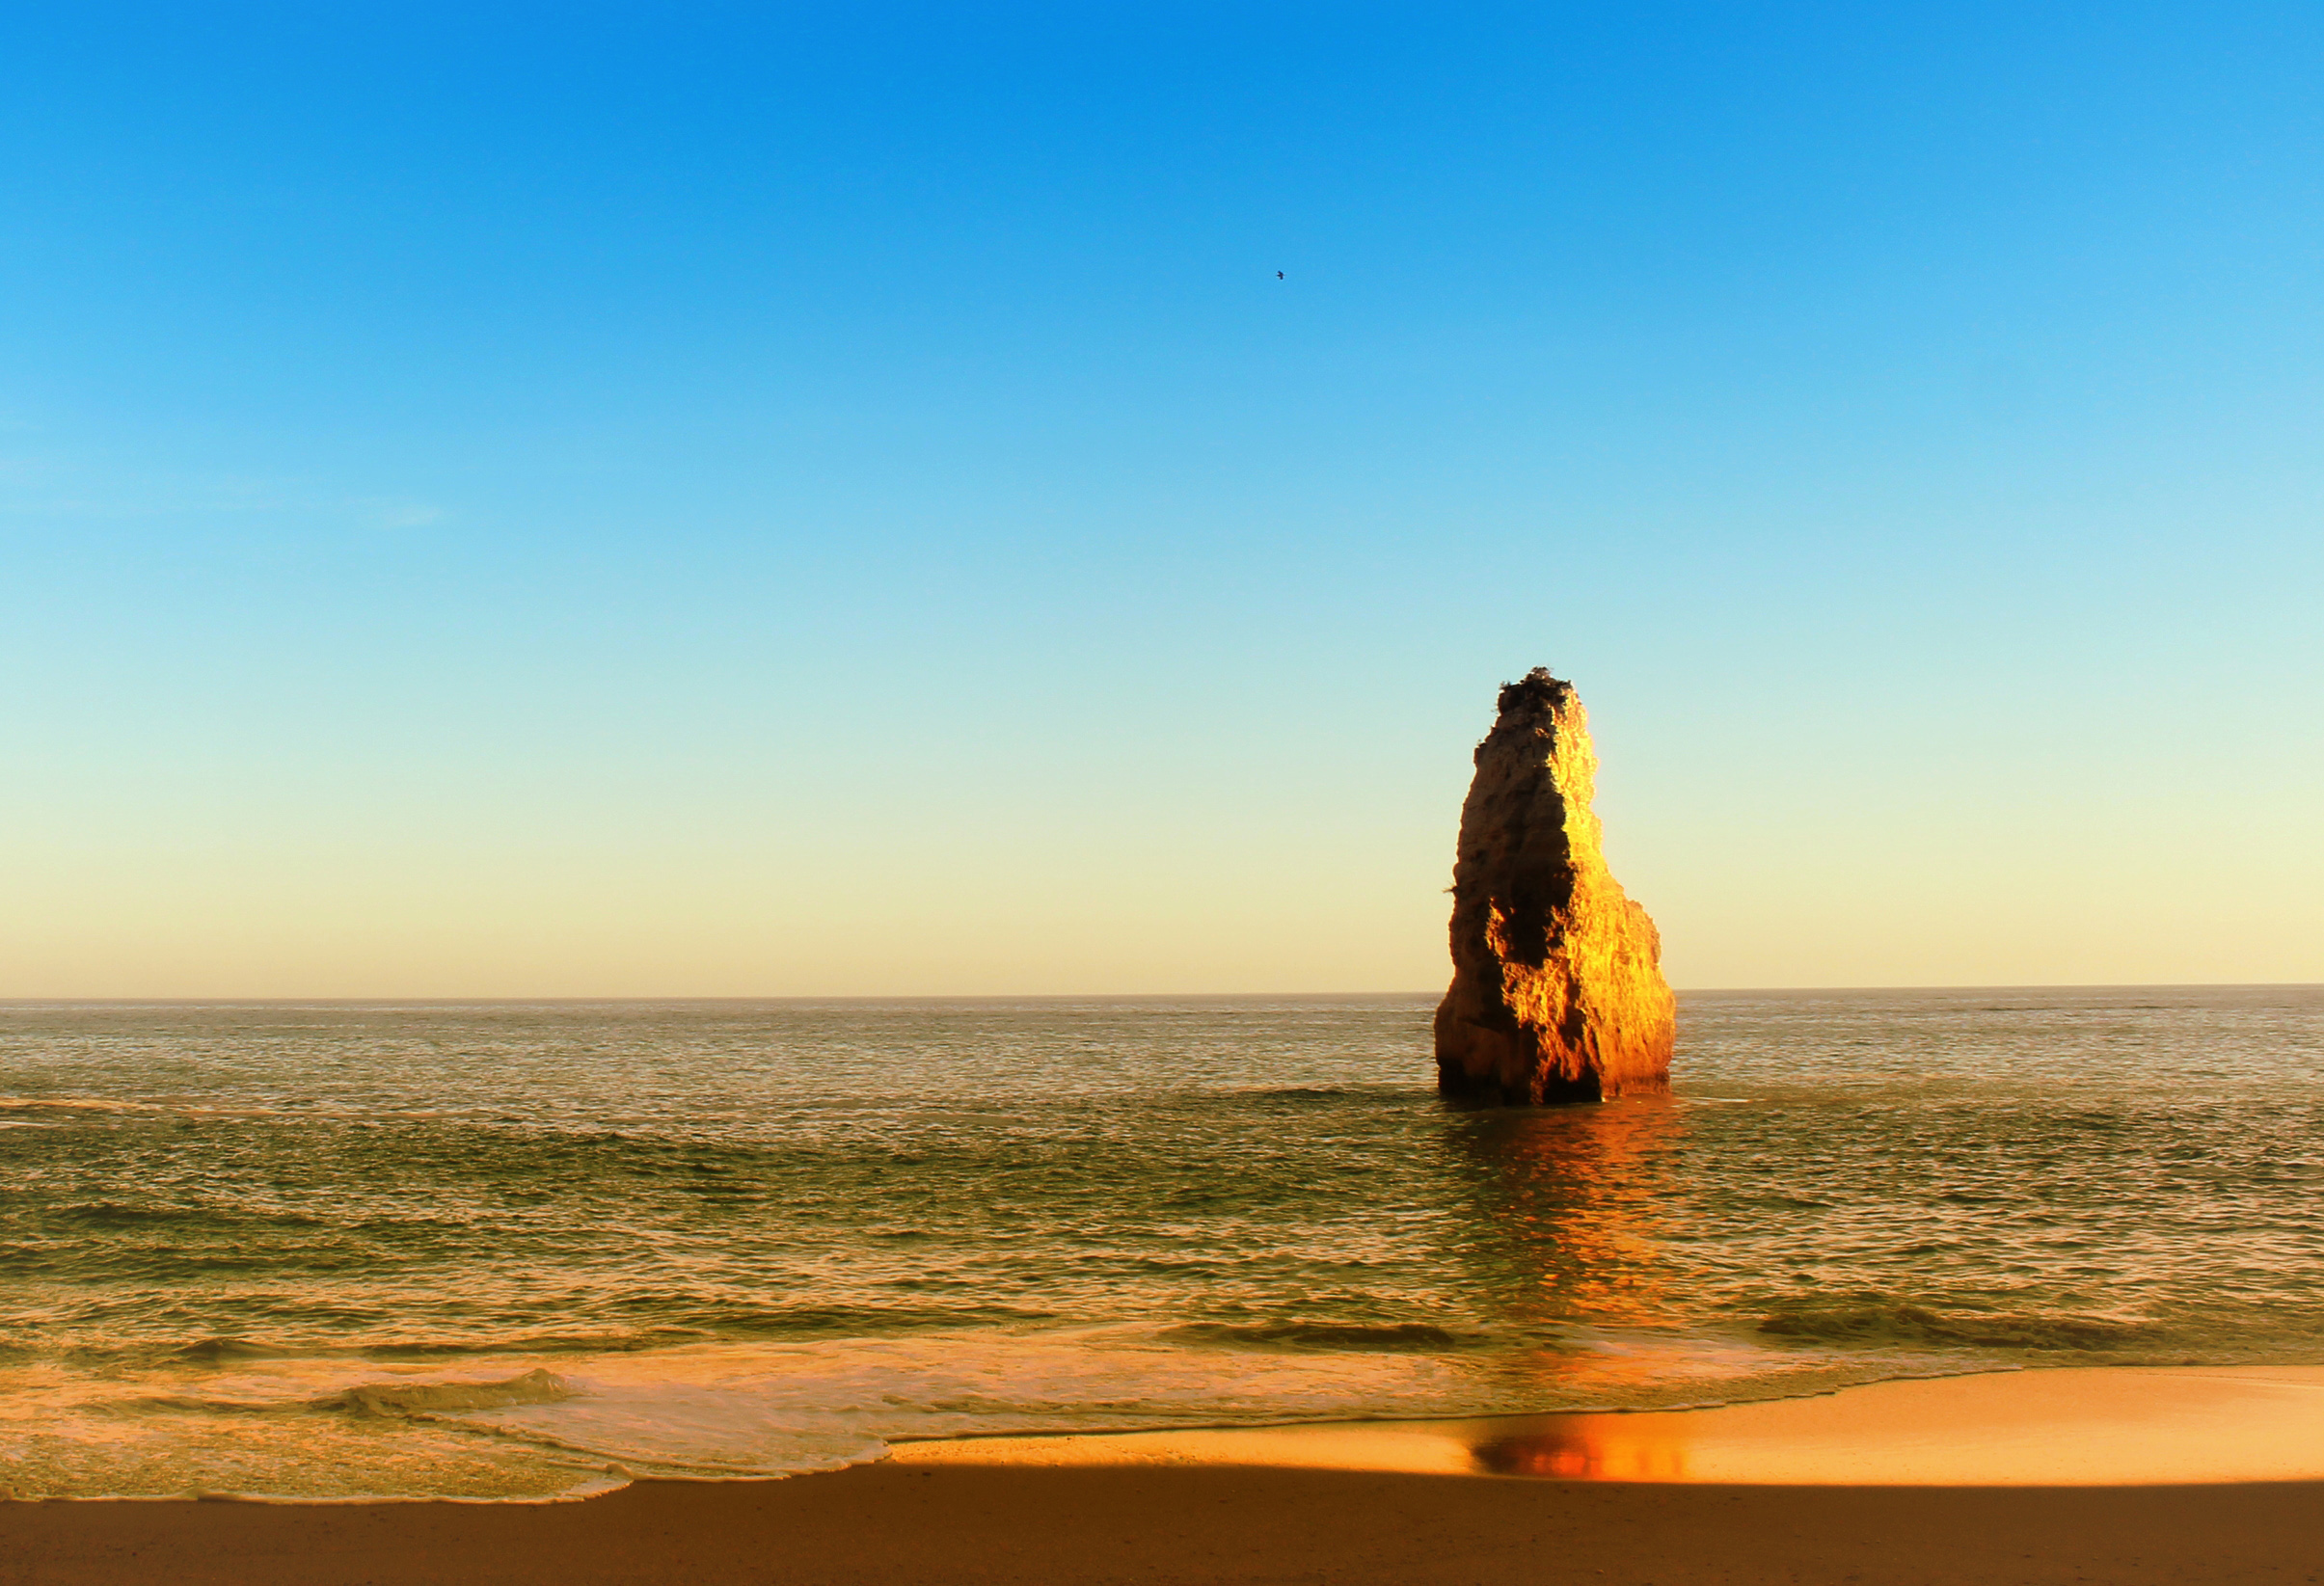 Golden Sea Stack - Beach in the Algarve - Portugal, Algarve, Sand, Vacation, Travel, HQ Photo